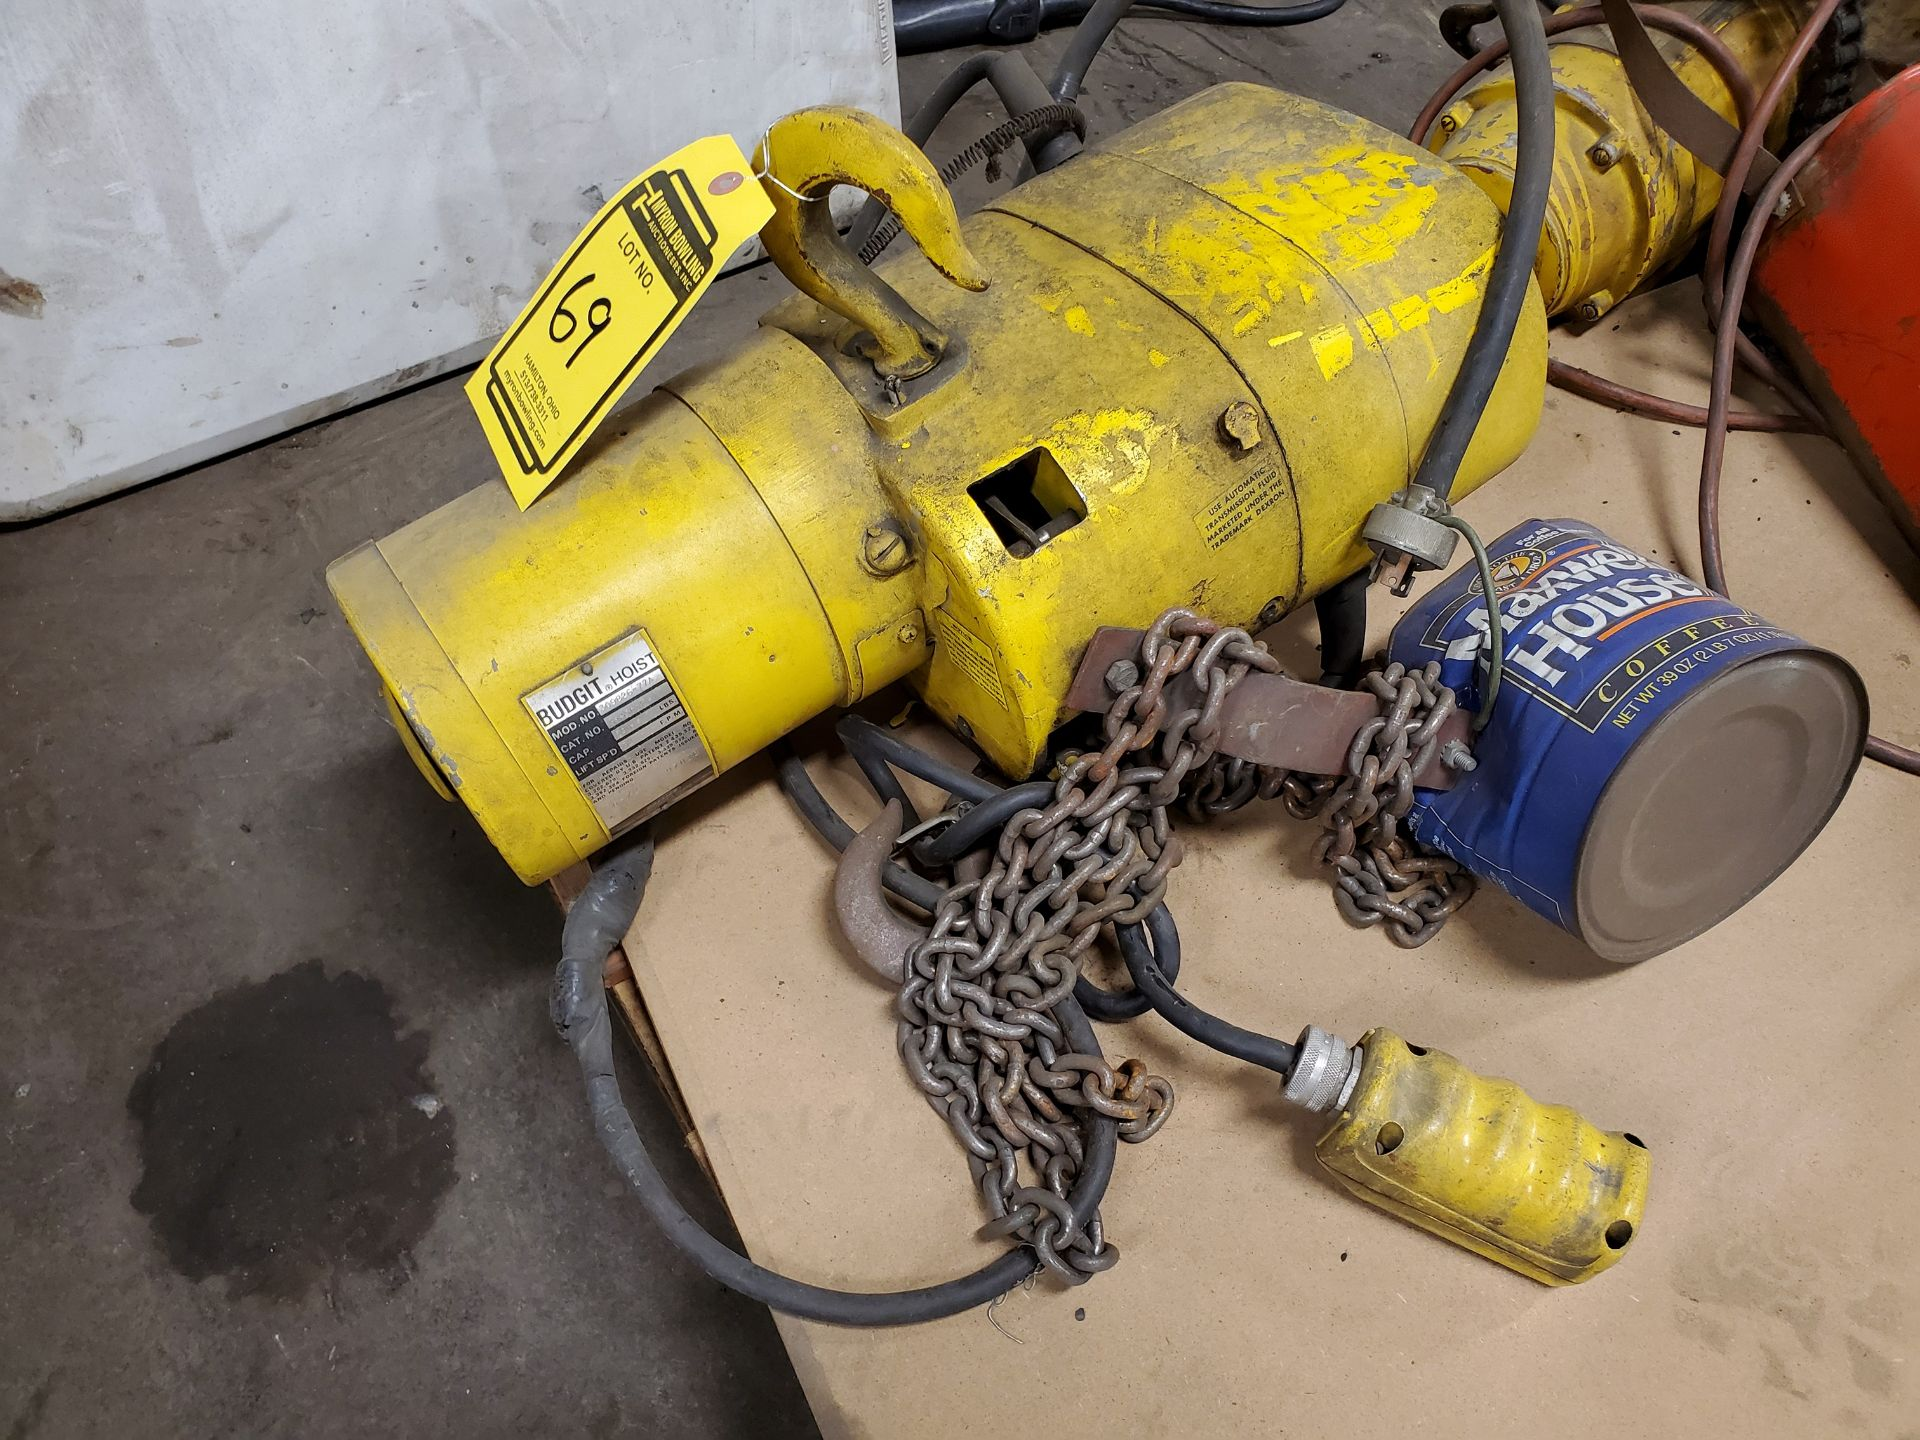 Lot 69 - BUDGIT 1/4 TON ELECTRIC CHAIN HOIST, S/N 97028